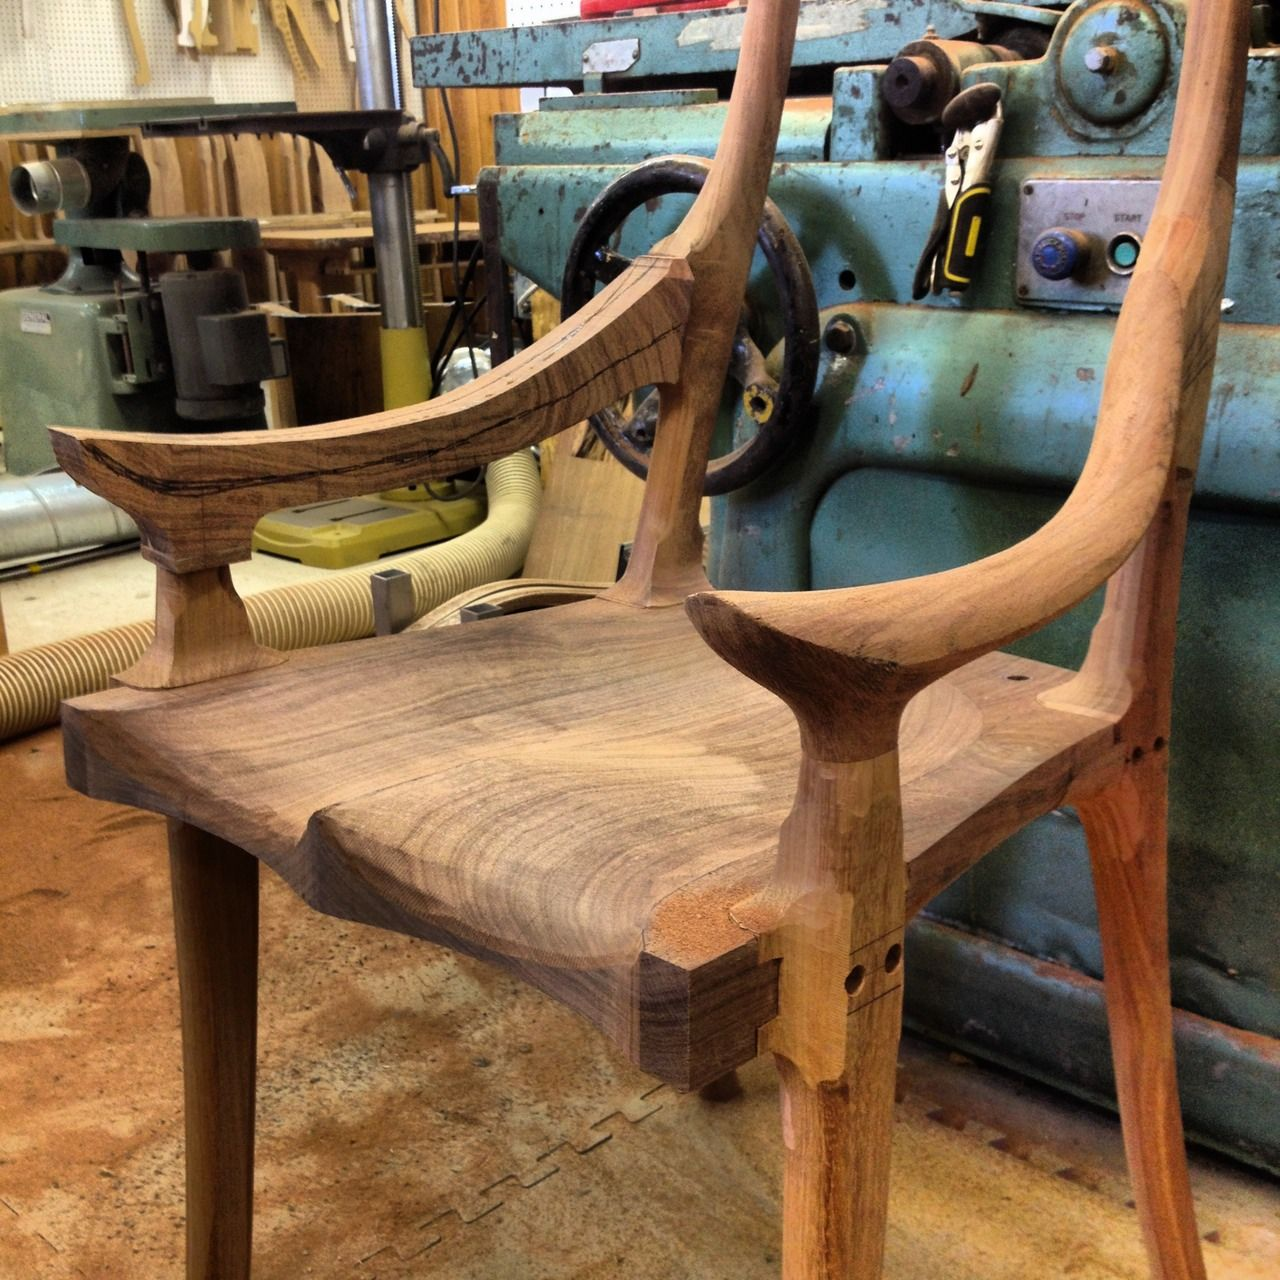 rocking chair fine woodworking corbusier lounge my instagram feed custom wooden